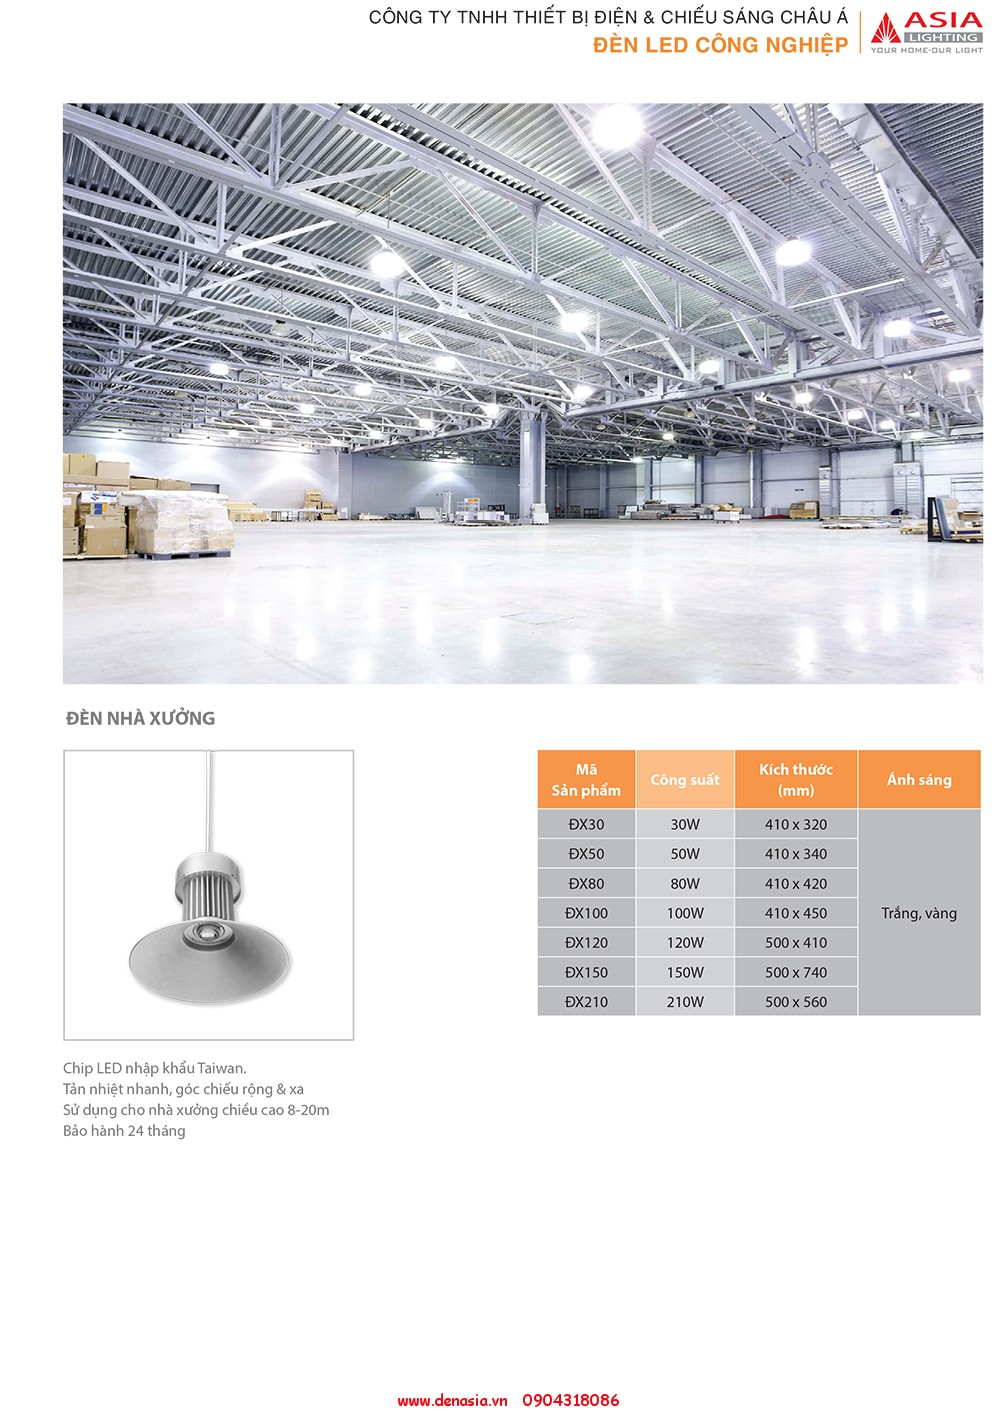 CATALOG - ĐÈN LED ASIA-17